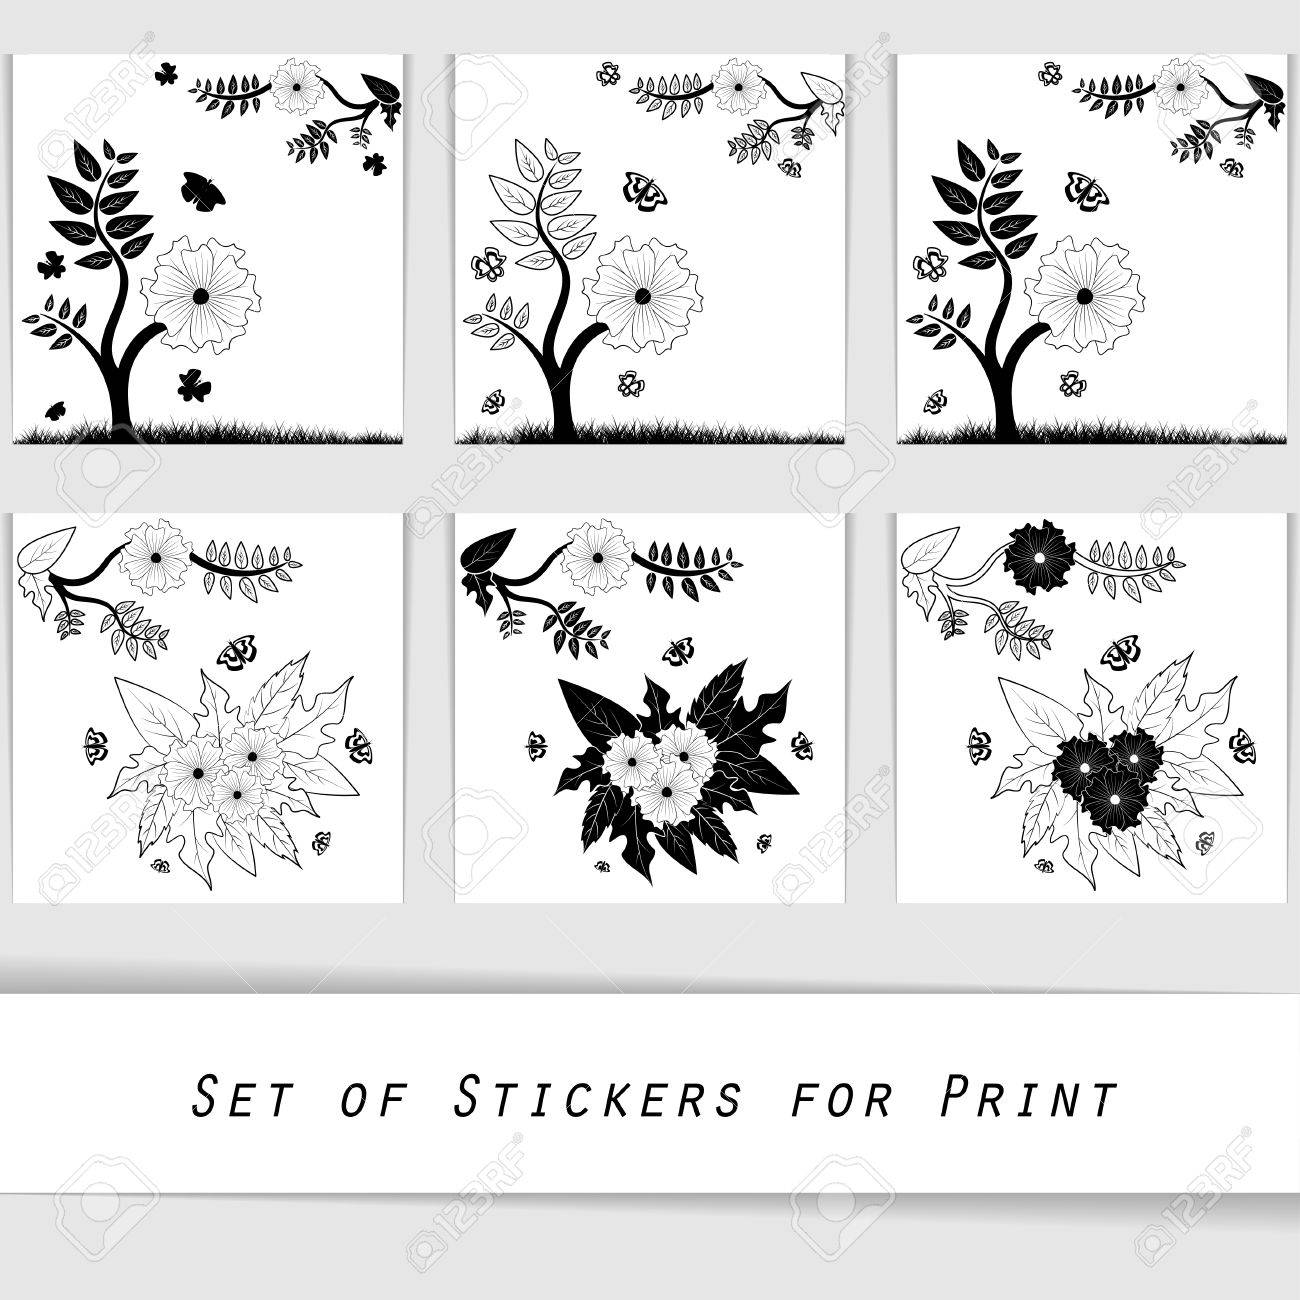 flower silhouette decorative elements for printing wall stickers vector flower silhouette decorative elements for printing wall stickers paper stickers or can be used in printshop